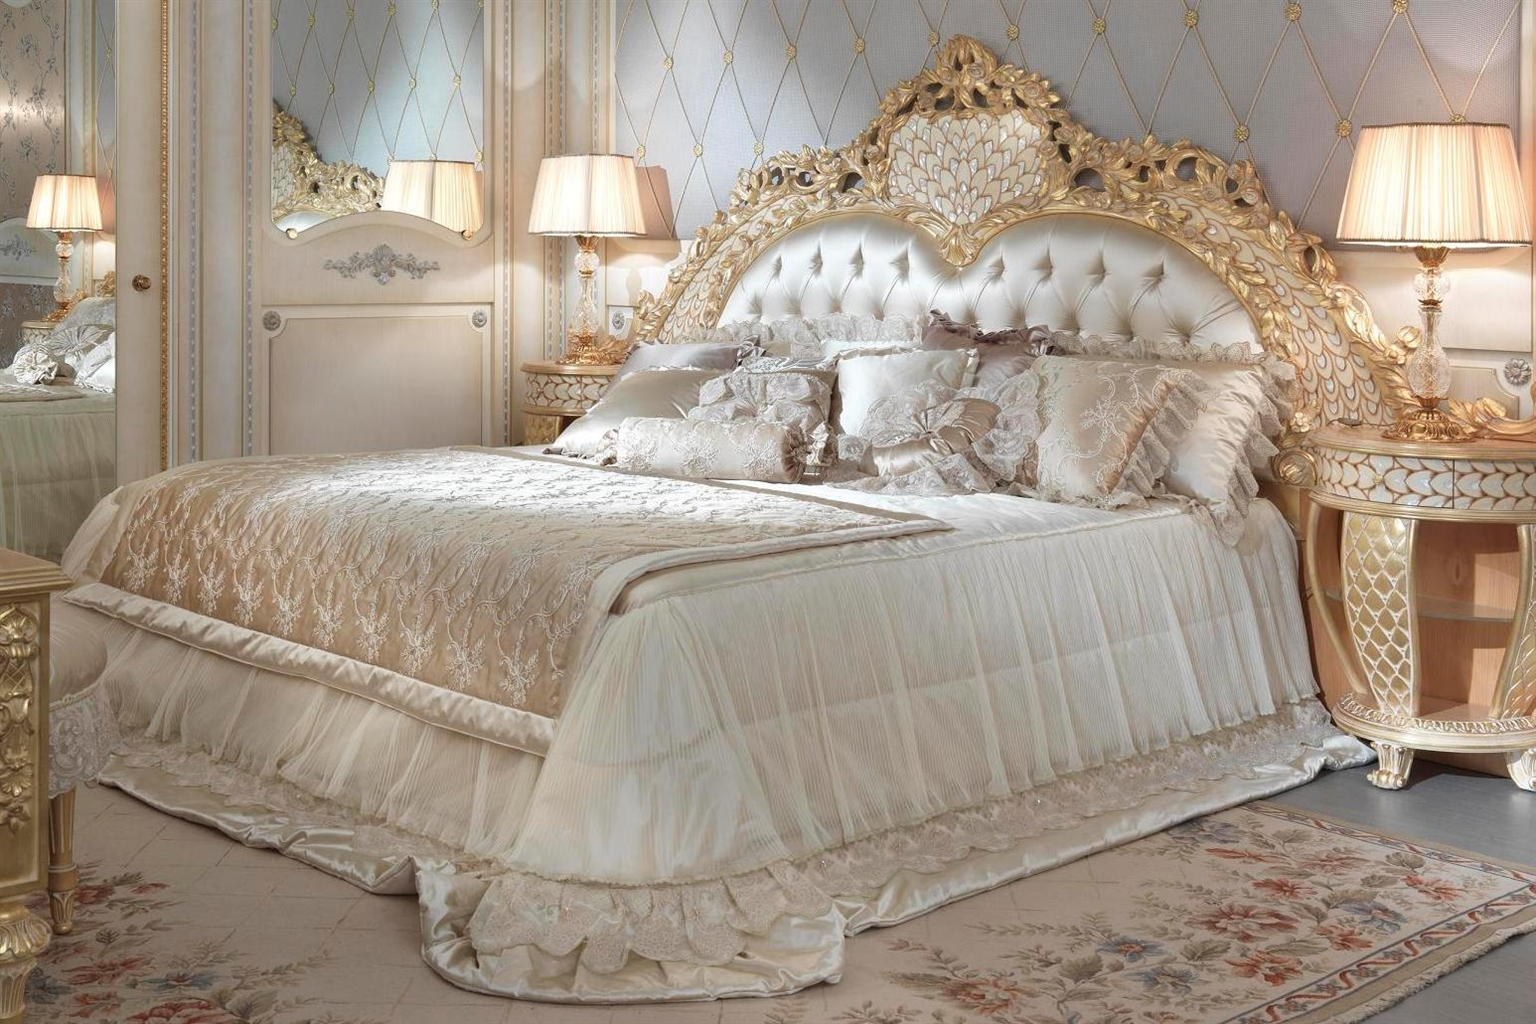 Sleep Like A Movie Star With This Amazing Bedroom Set